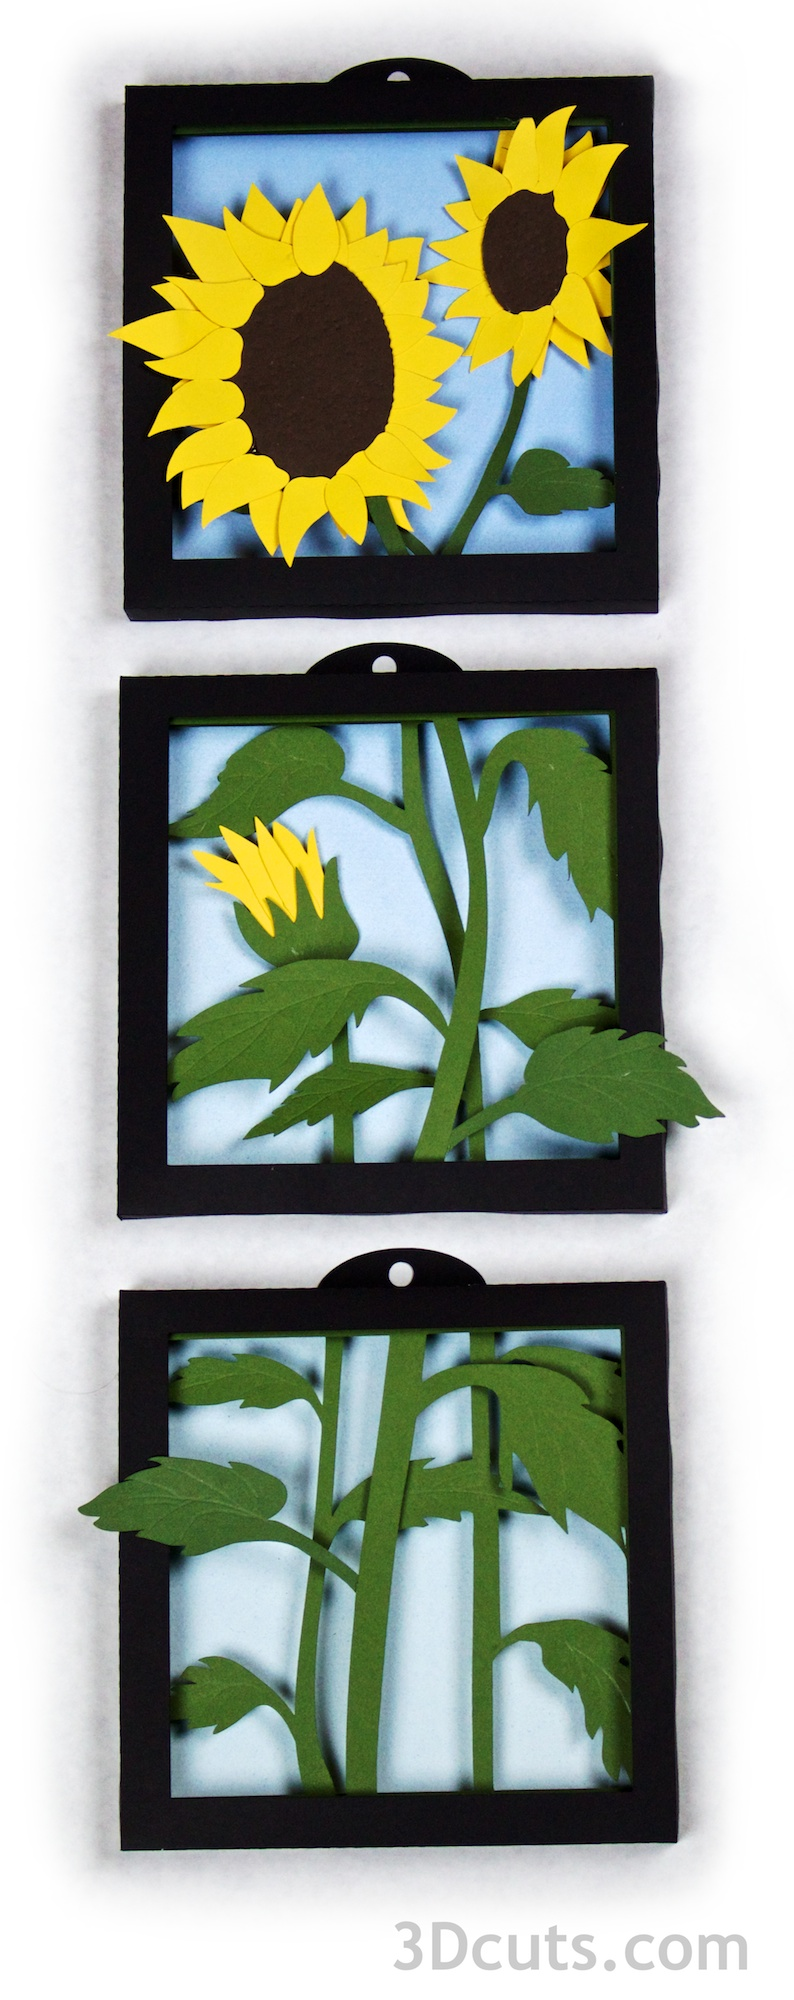 3DCuts.com, Marji Roy, 3D cutting files in .svg, .dxf, and pdf. formats for use with Silhouette and Cricut cutting machines, paper crafting files, Sunflower Shadow boxes